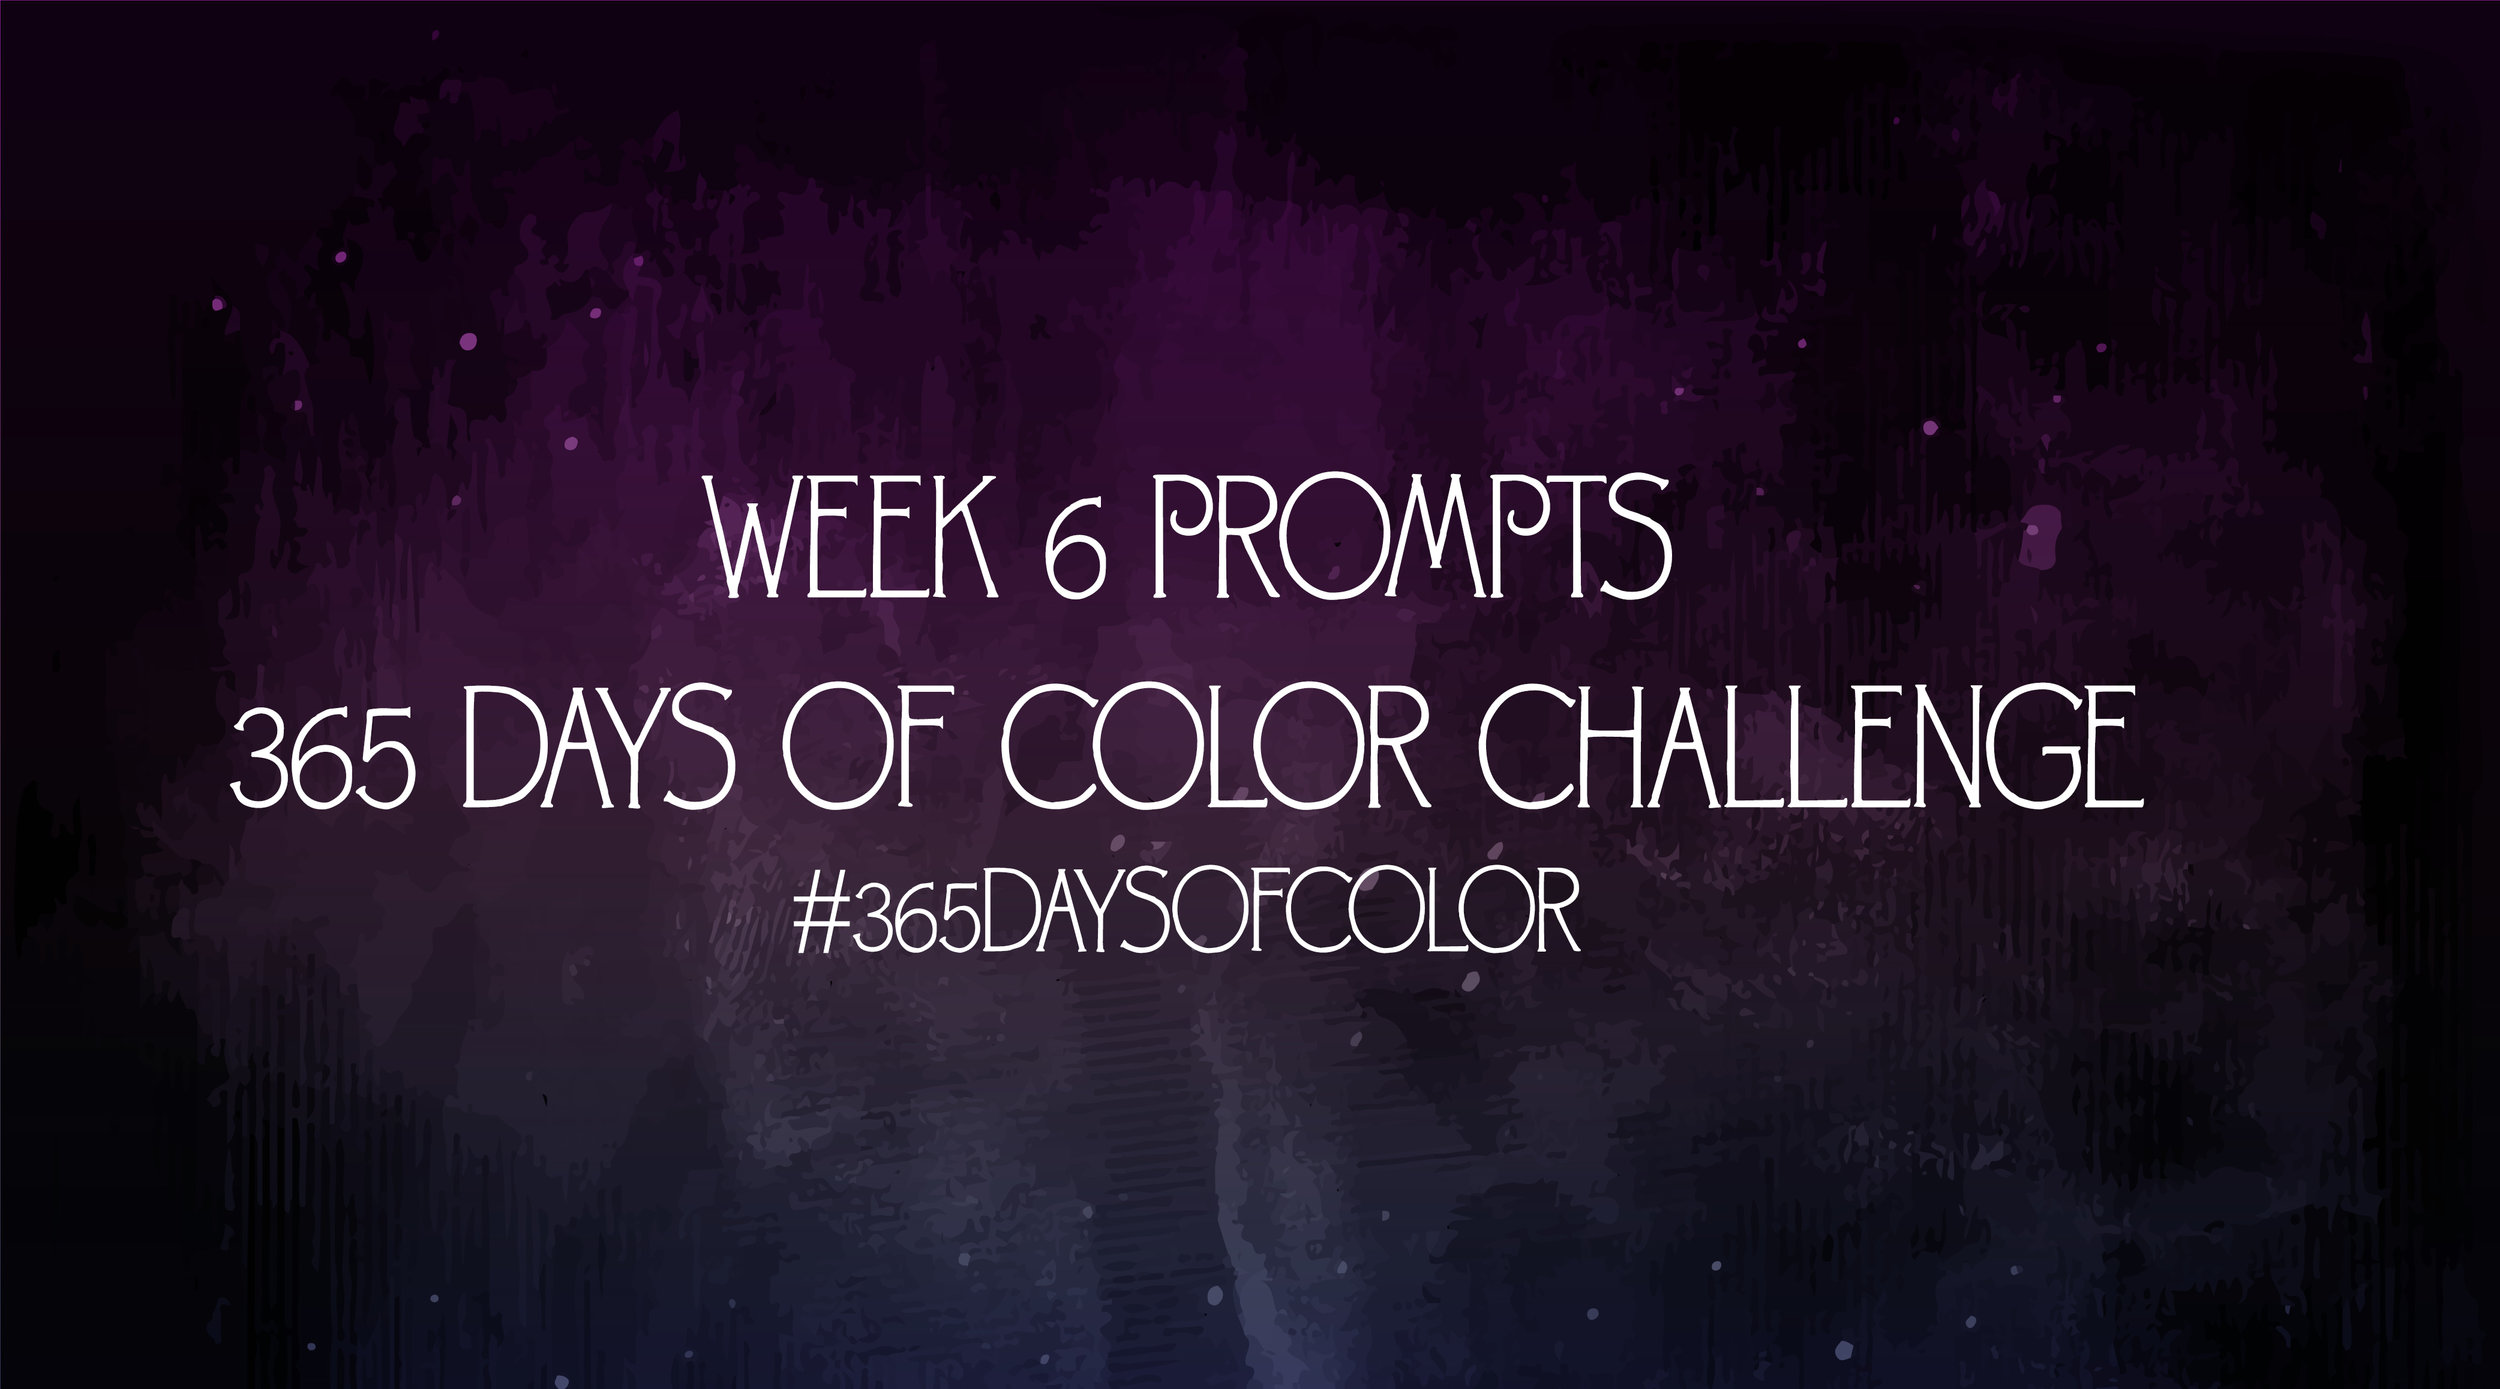 Week 6 art prompts for 365 days of color challenge